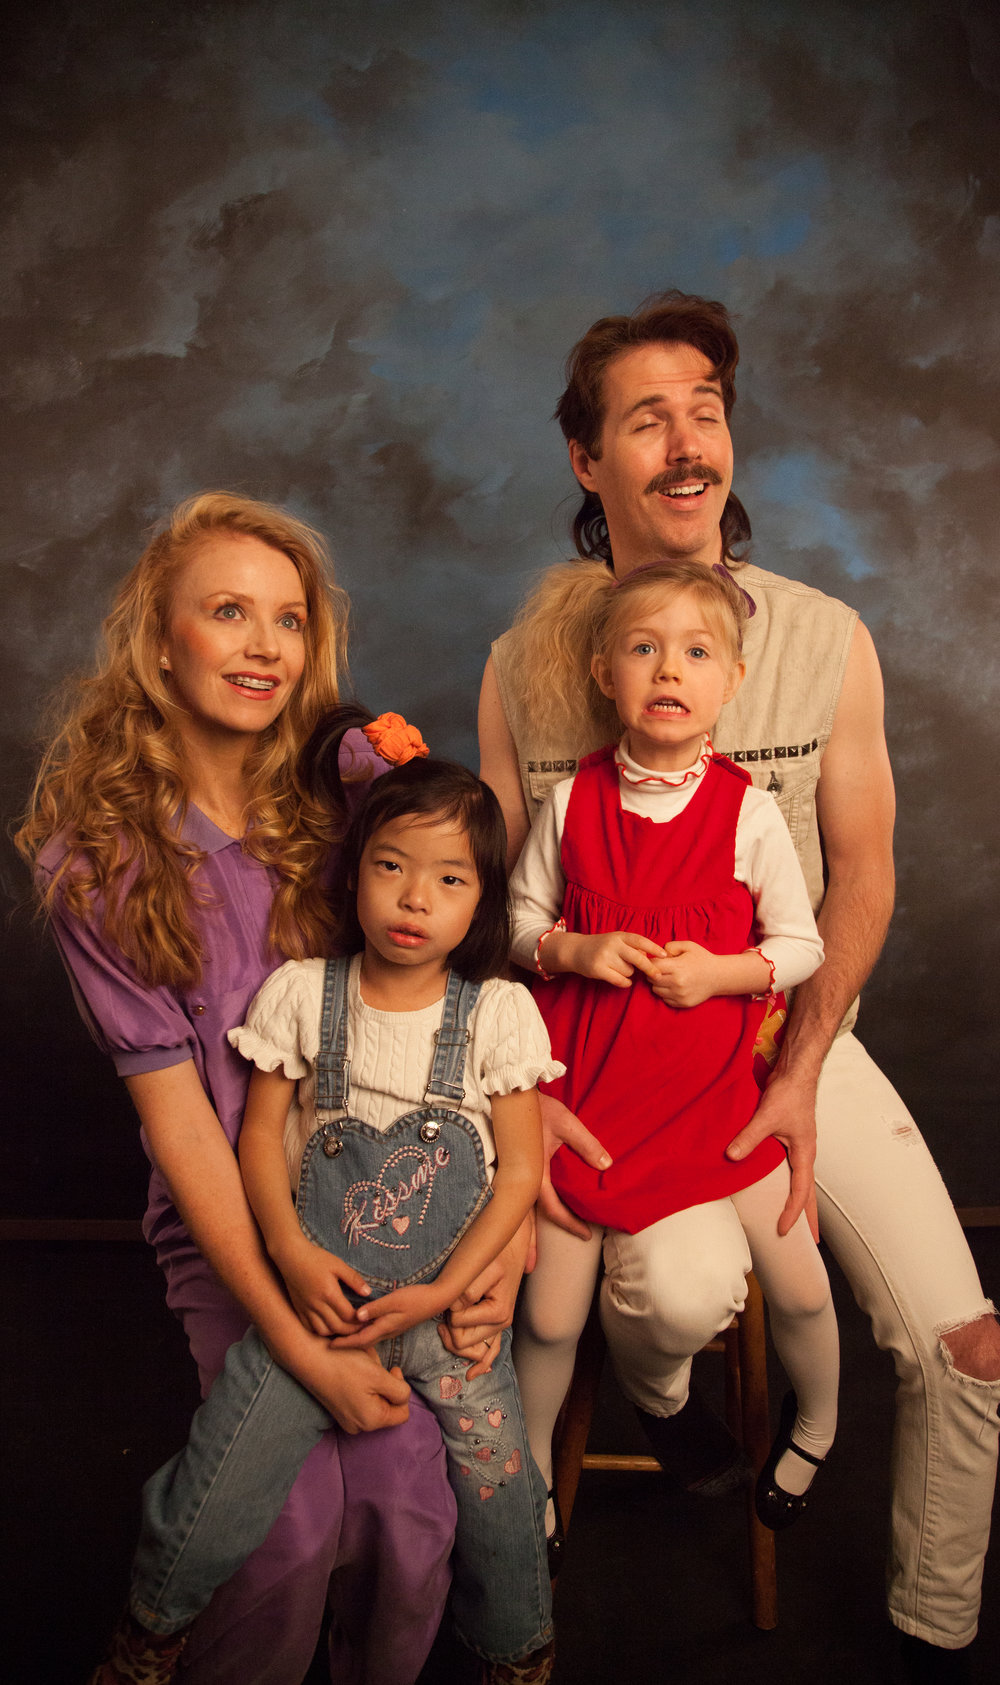 This family wanted a throwback to the 80s / awkward family shoot.